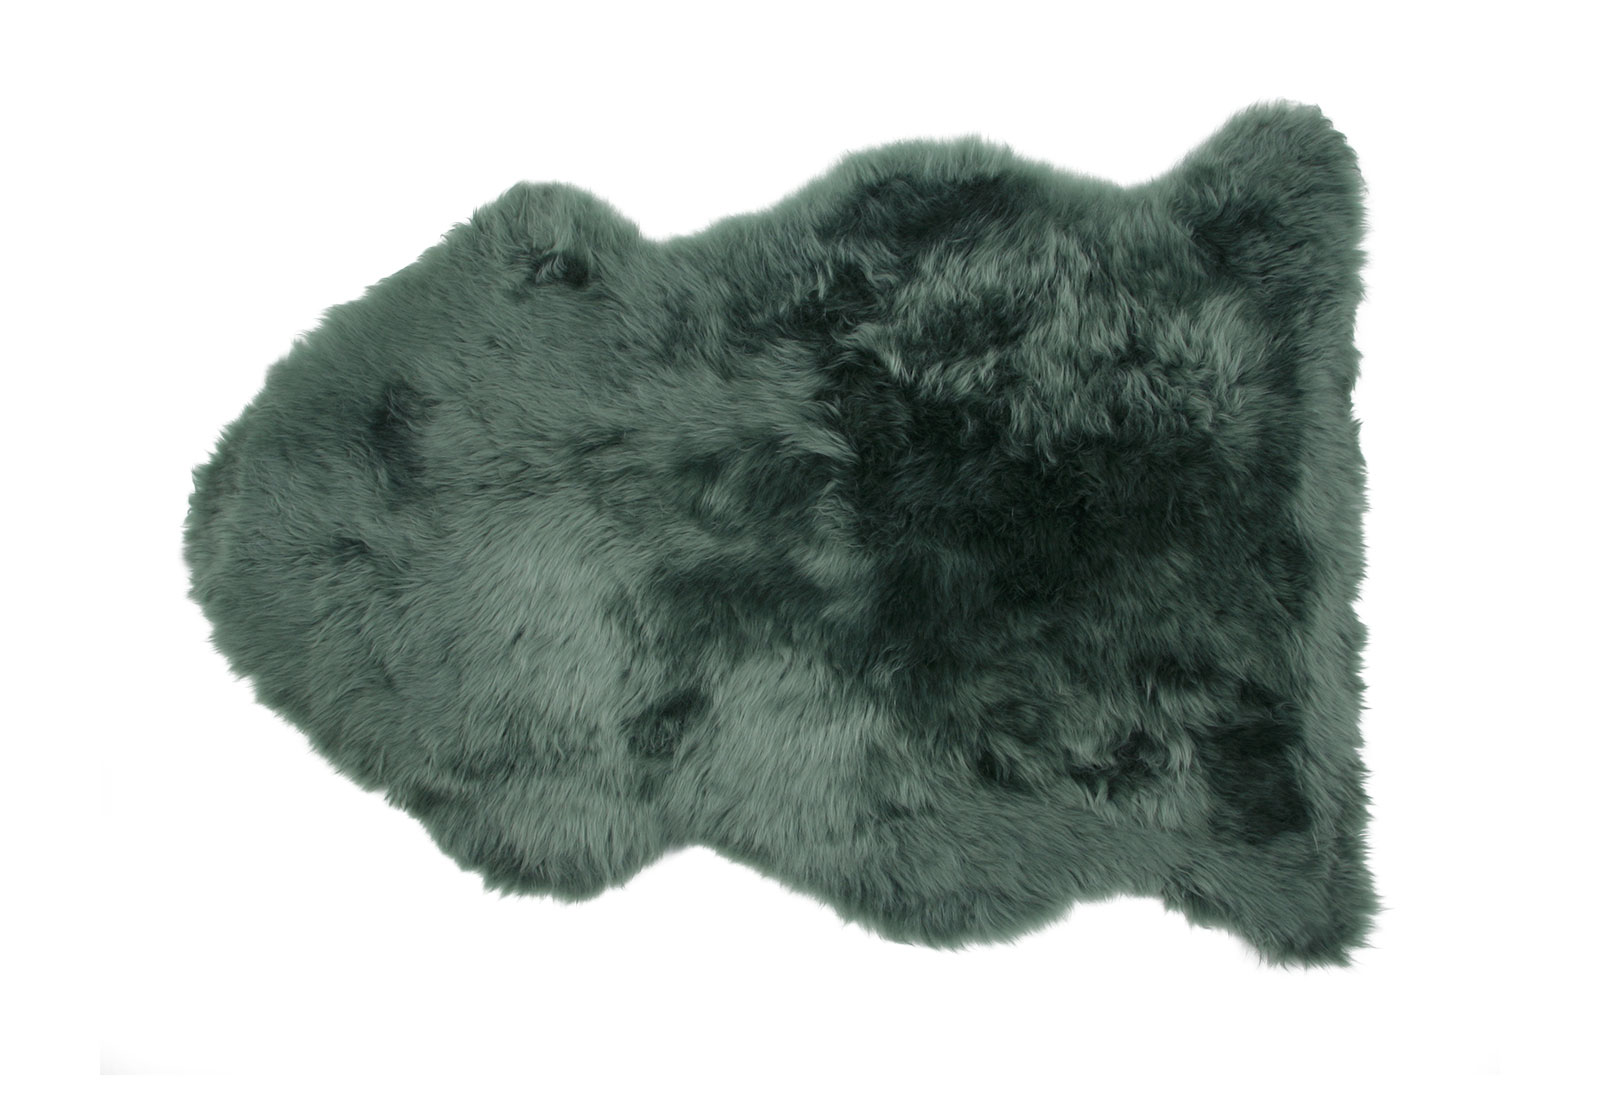 Evergreen Sheepskin Rug